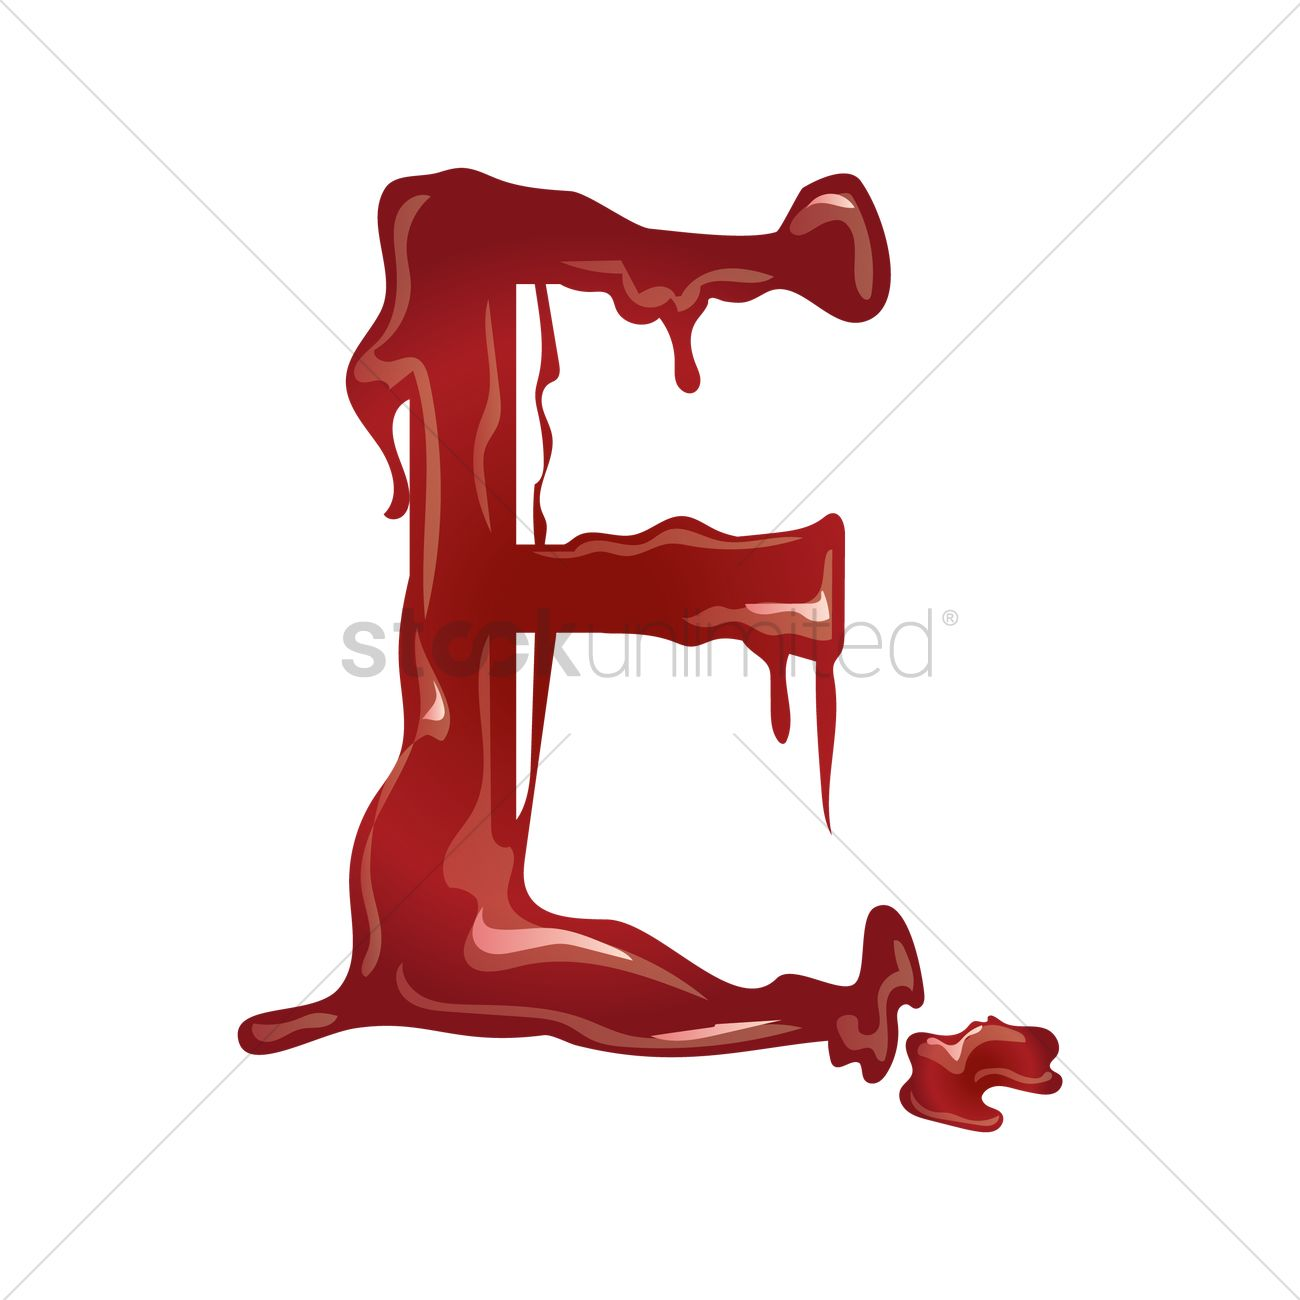 letter e with dripping blood vector graphic